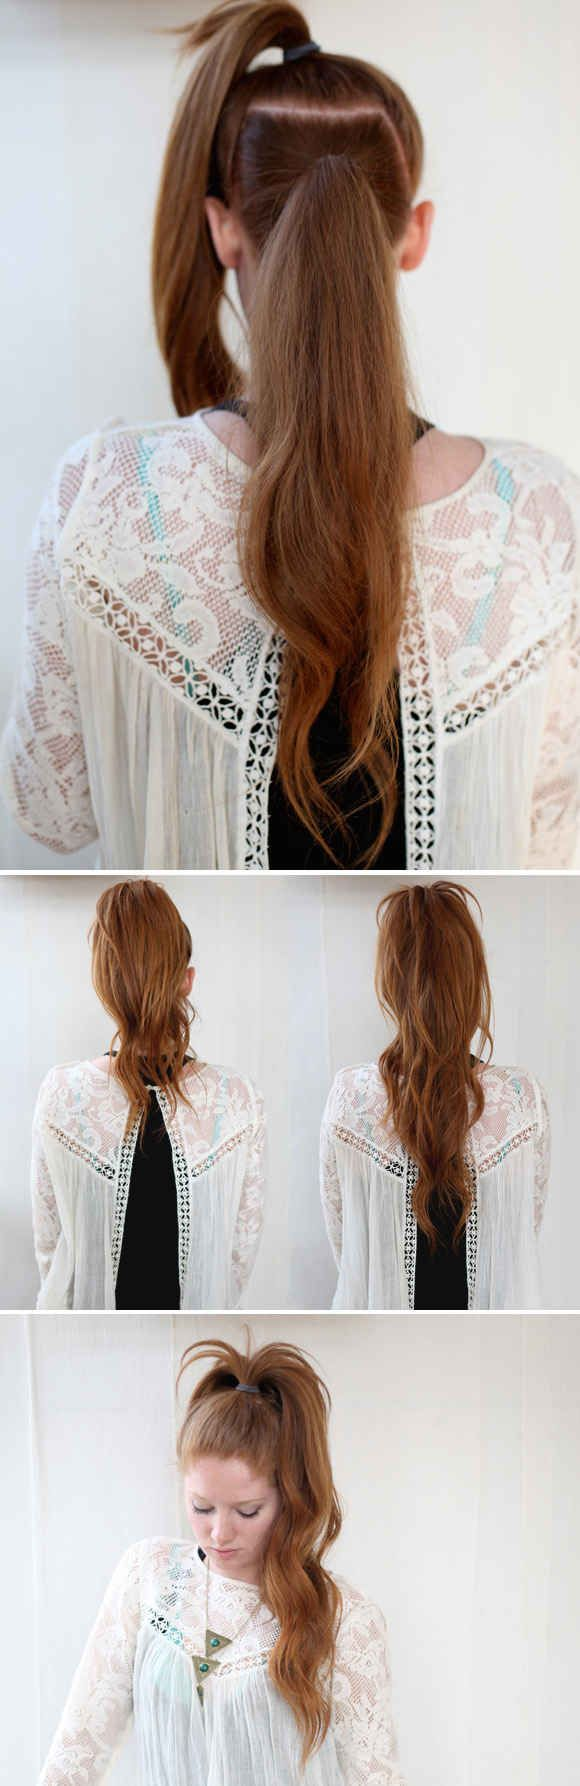 fiveminute hairstyles for busy morning pelooooos pinterest